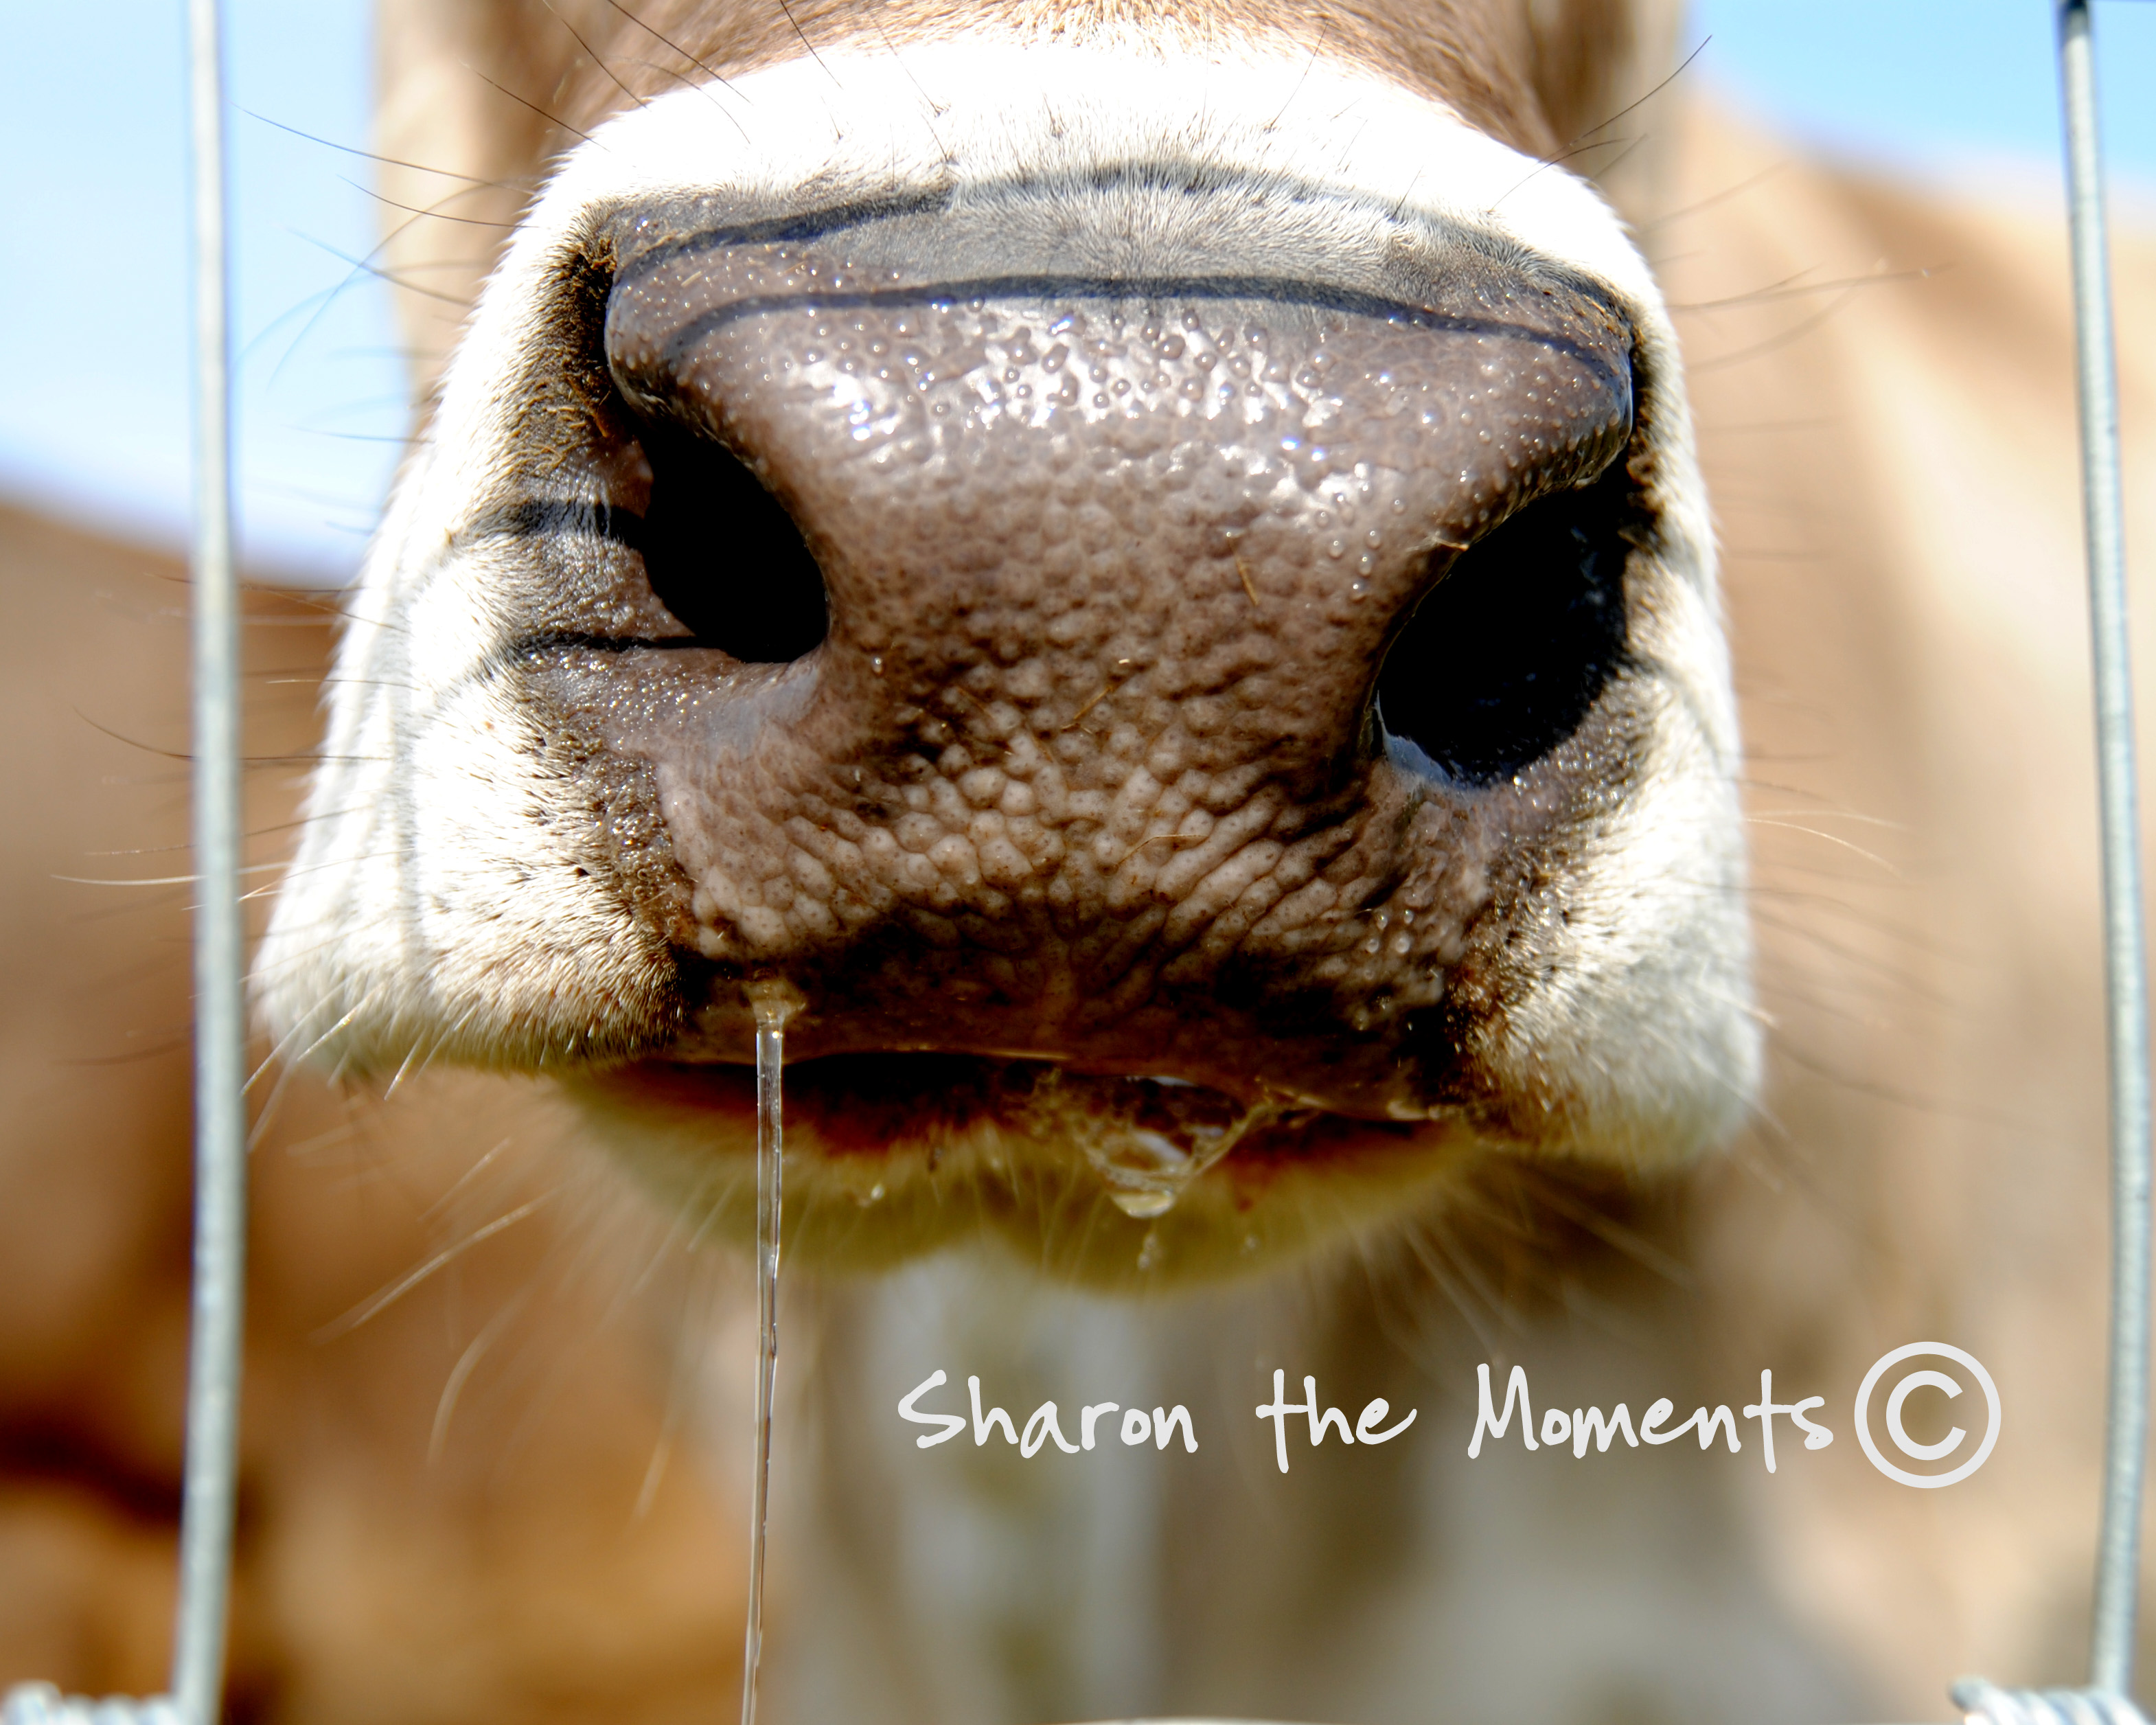 Slobbering cow at Orchard and Company|Sharon the Moments blog